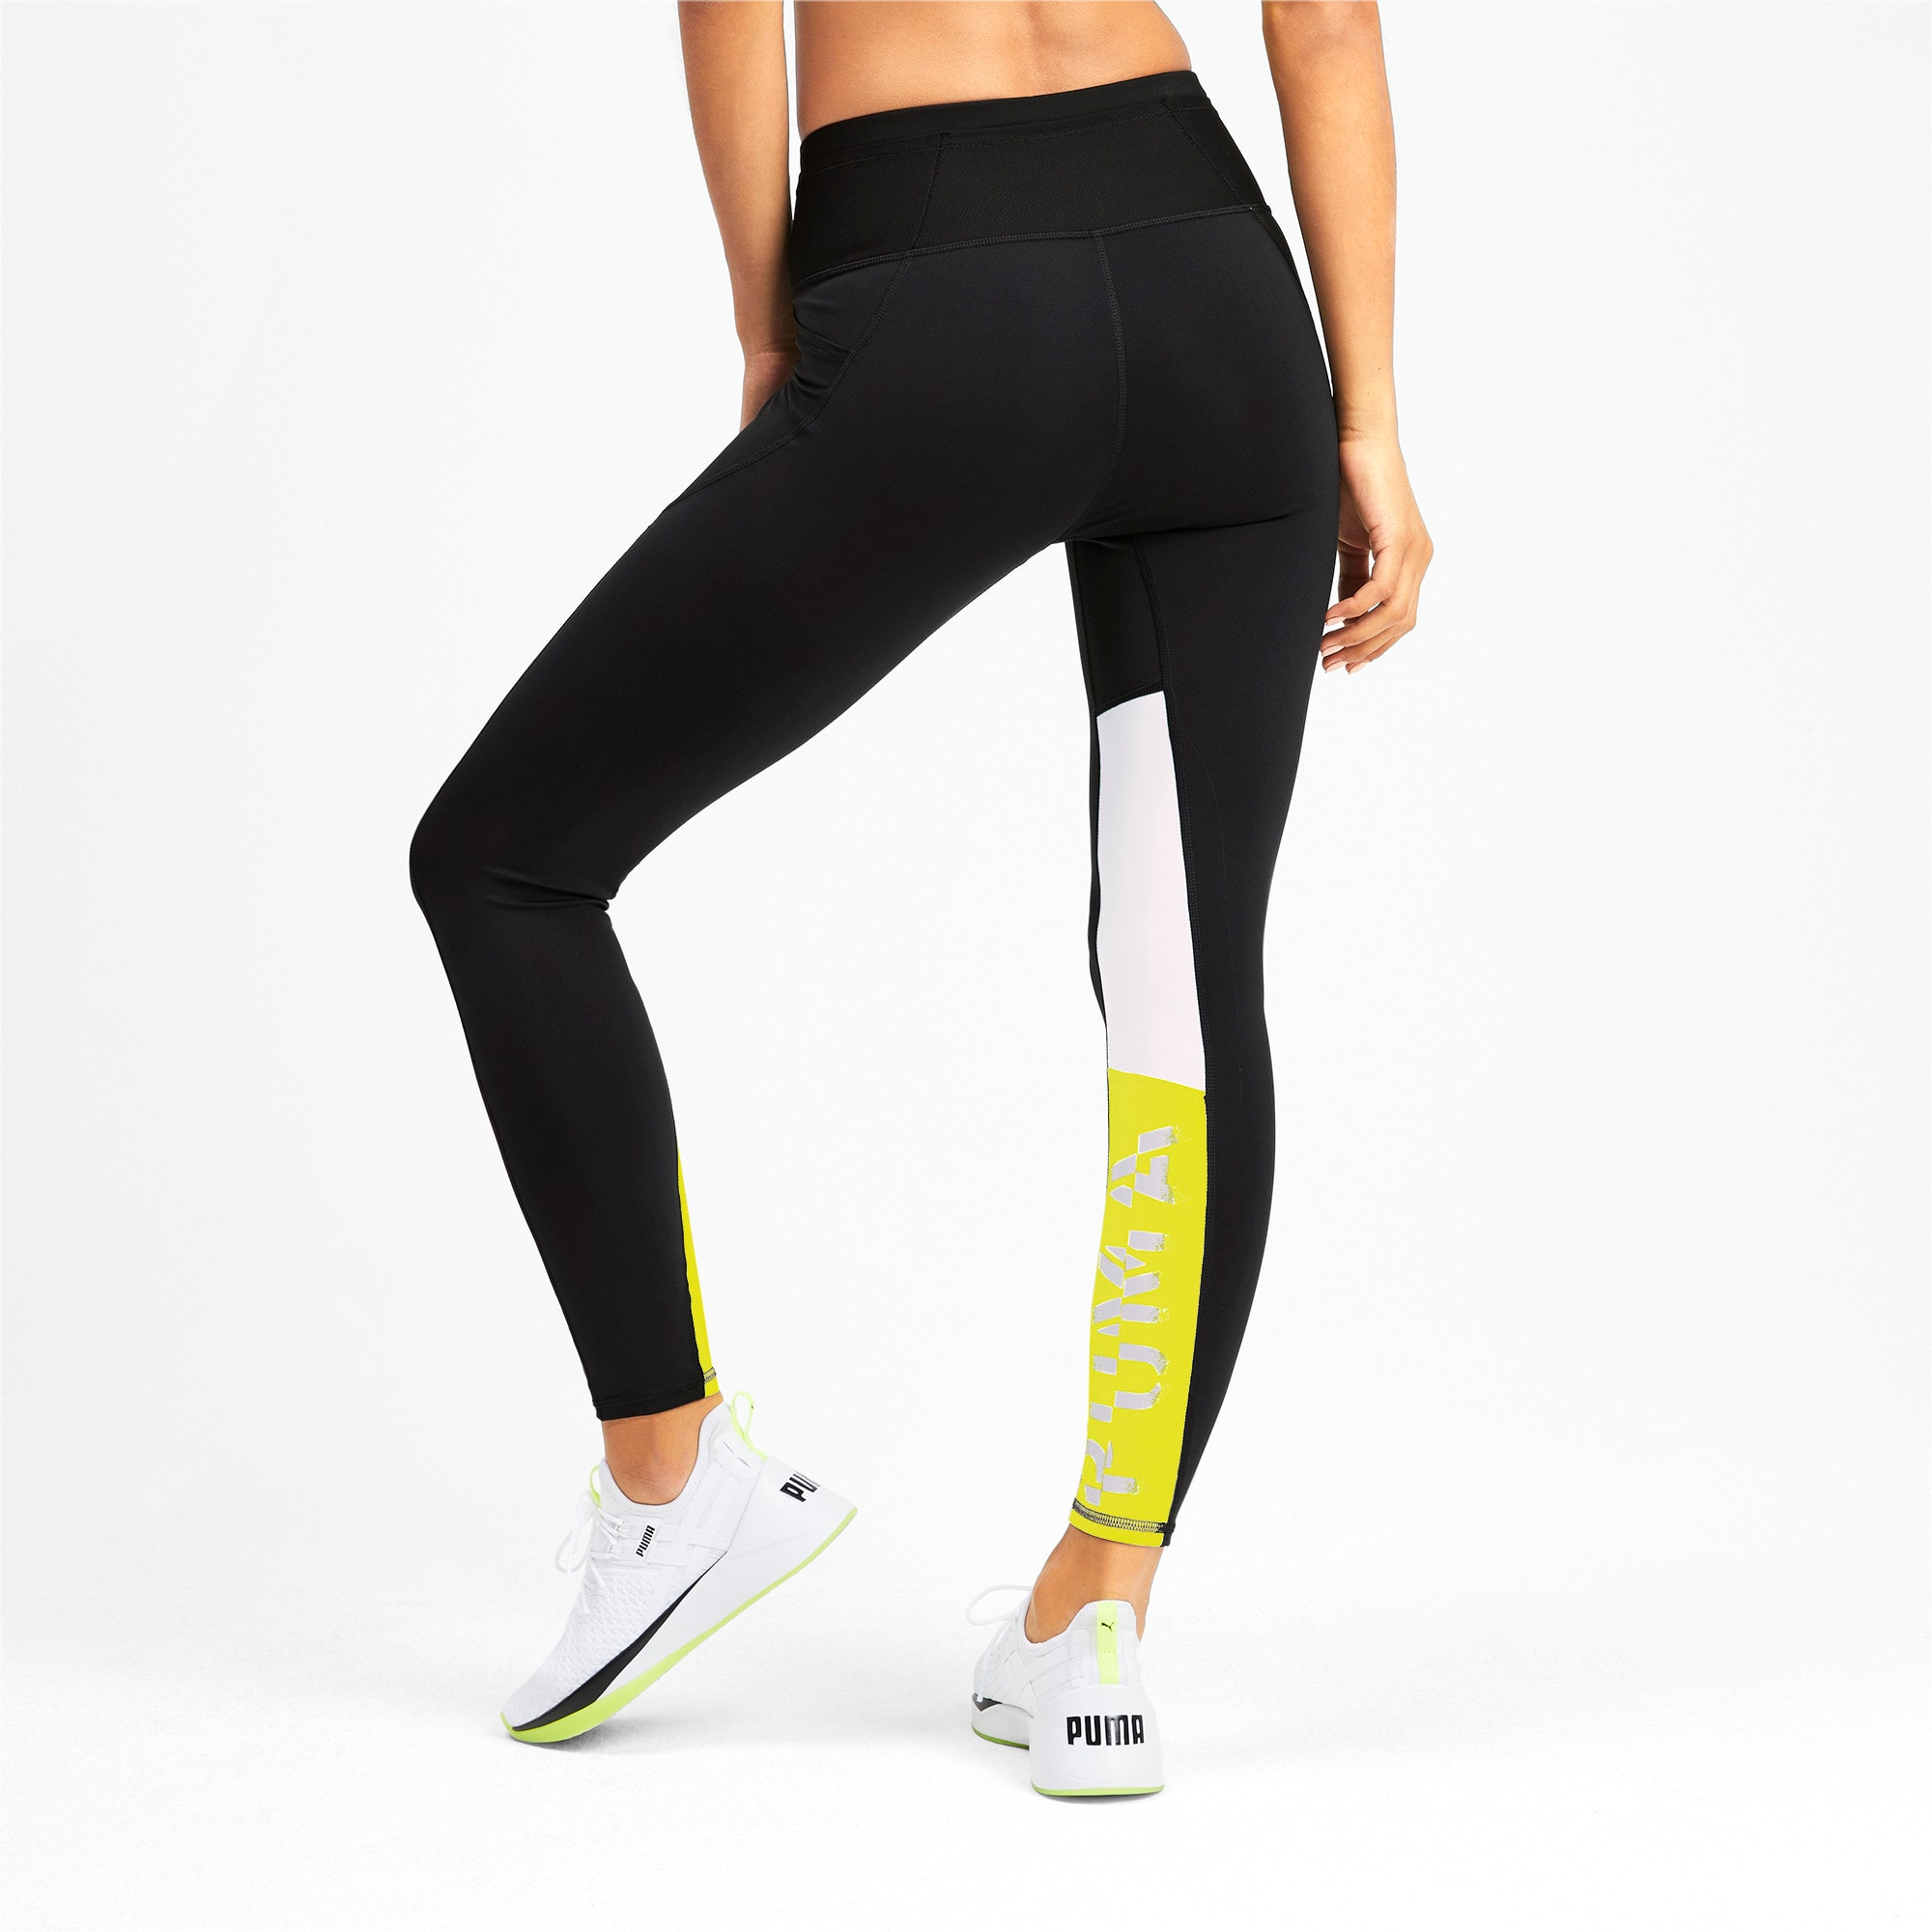 Thumbnail 2 of Feel It Women's 7/8 Leggings, Puma Black-Yellow Alert, medium